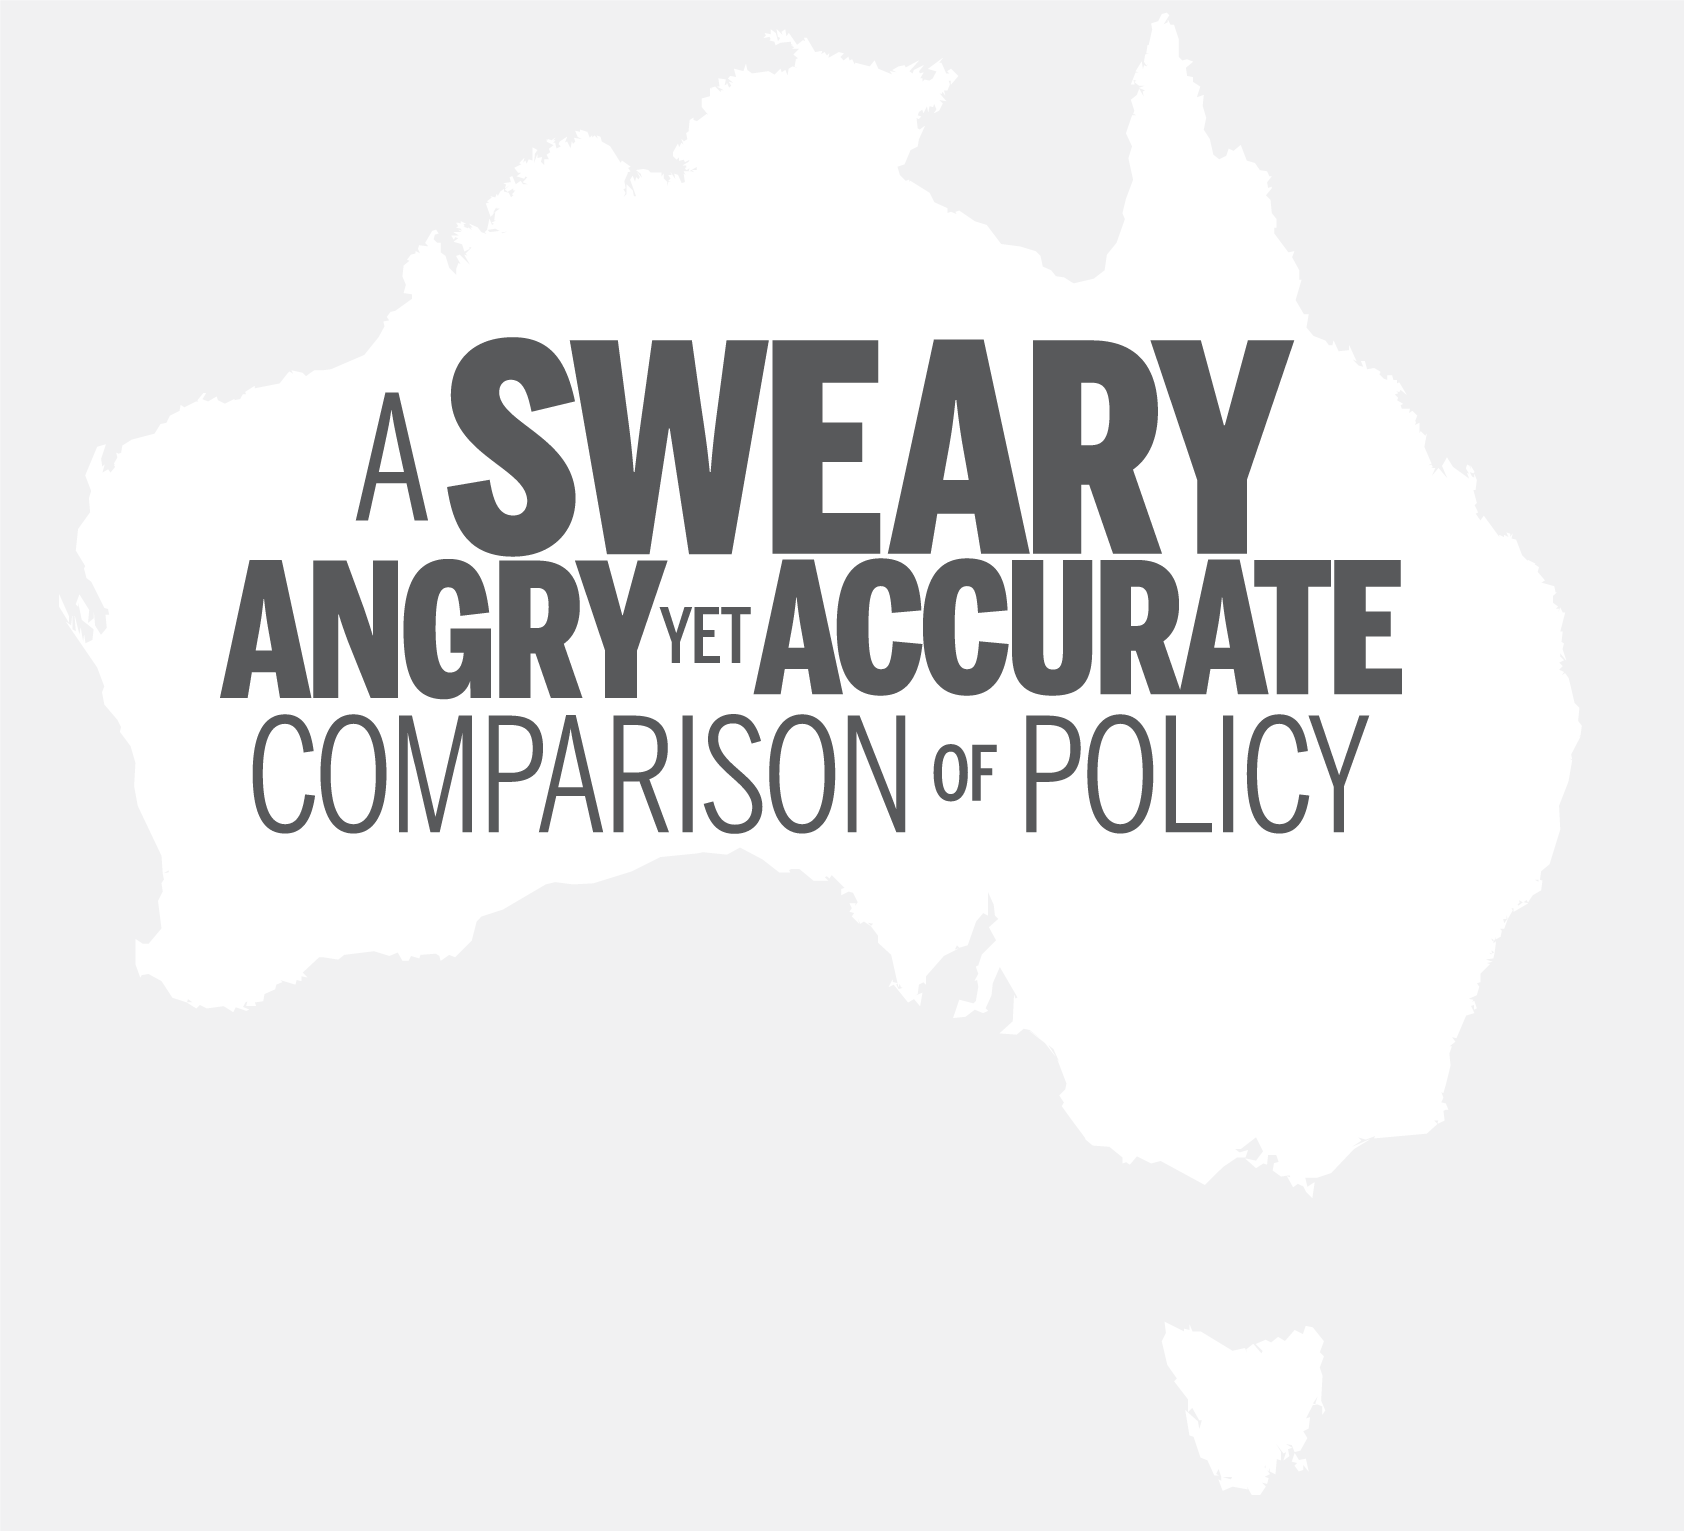 A SWEARY, ANGRY, yet ACCURATE comparison of policy.